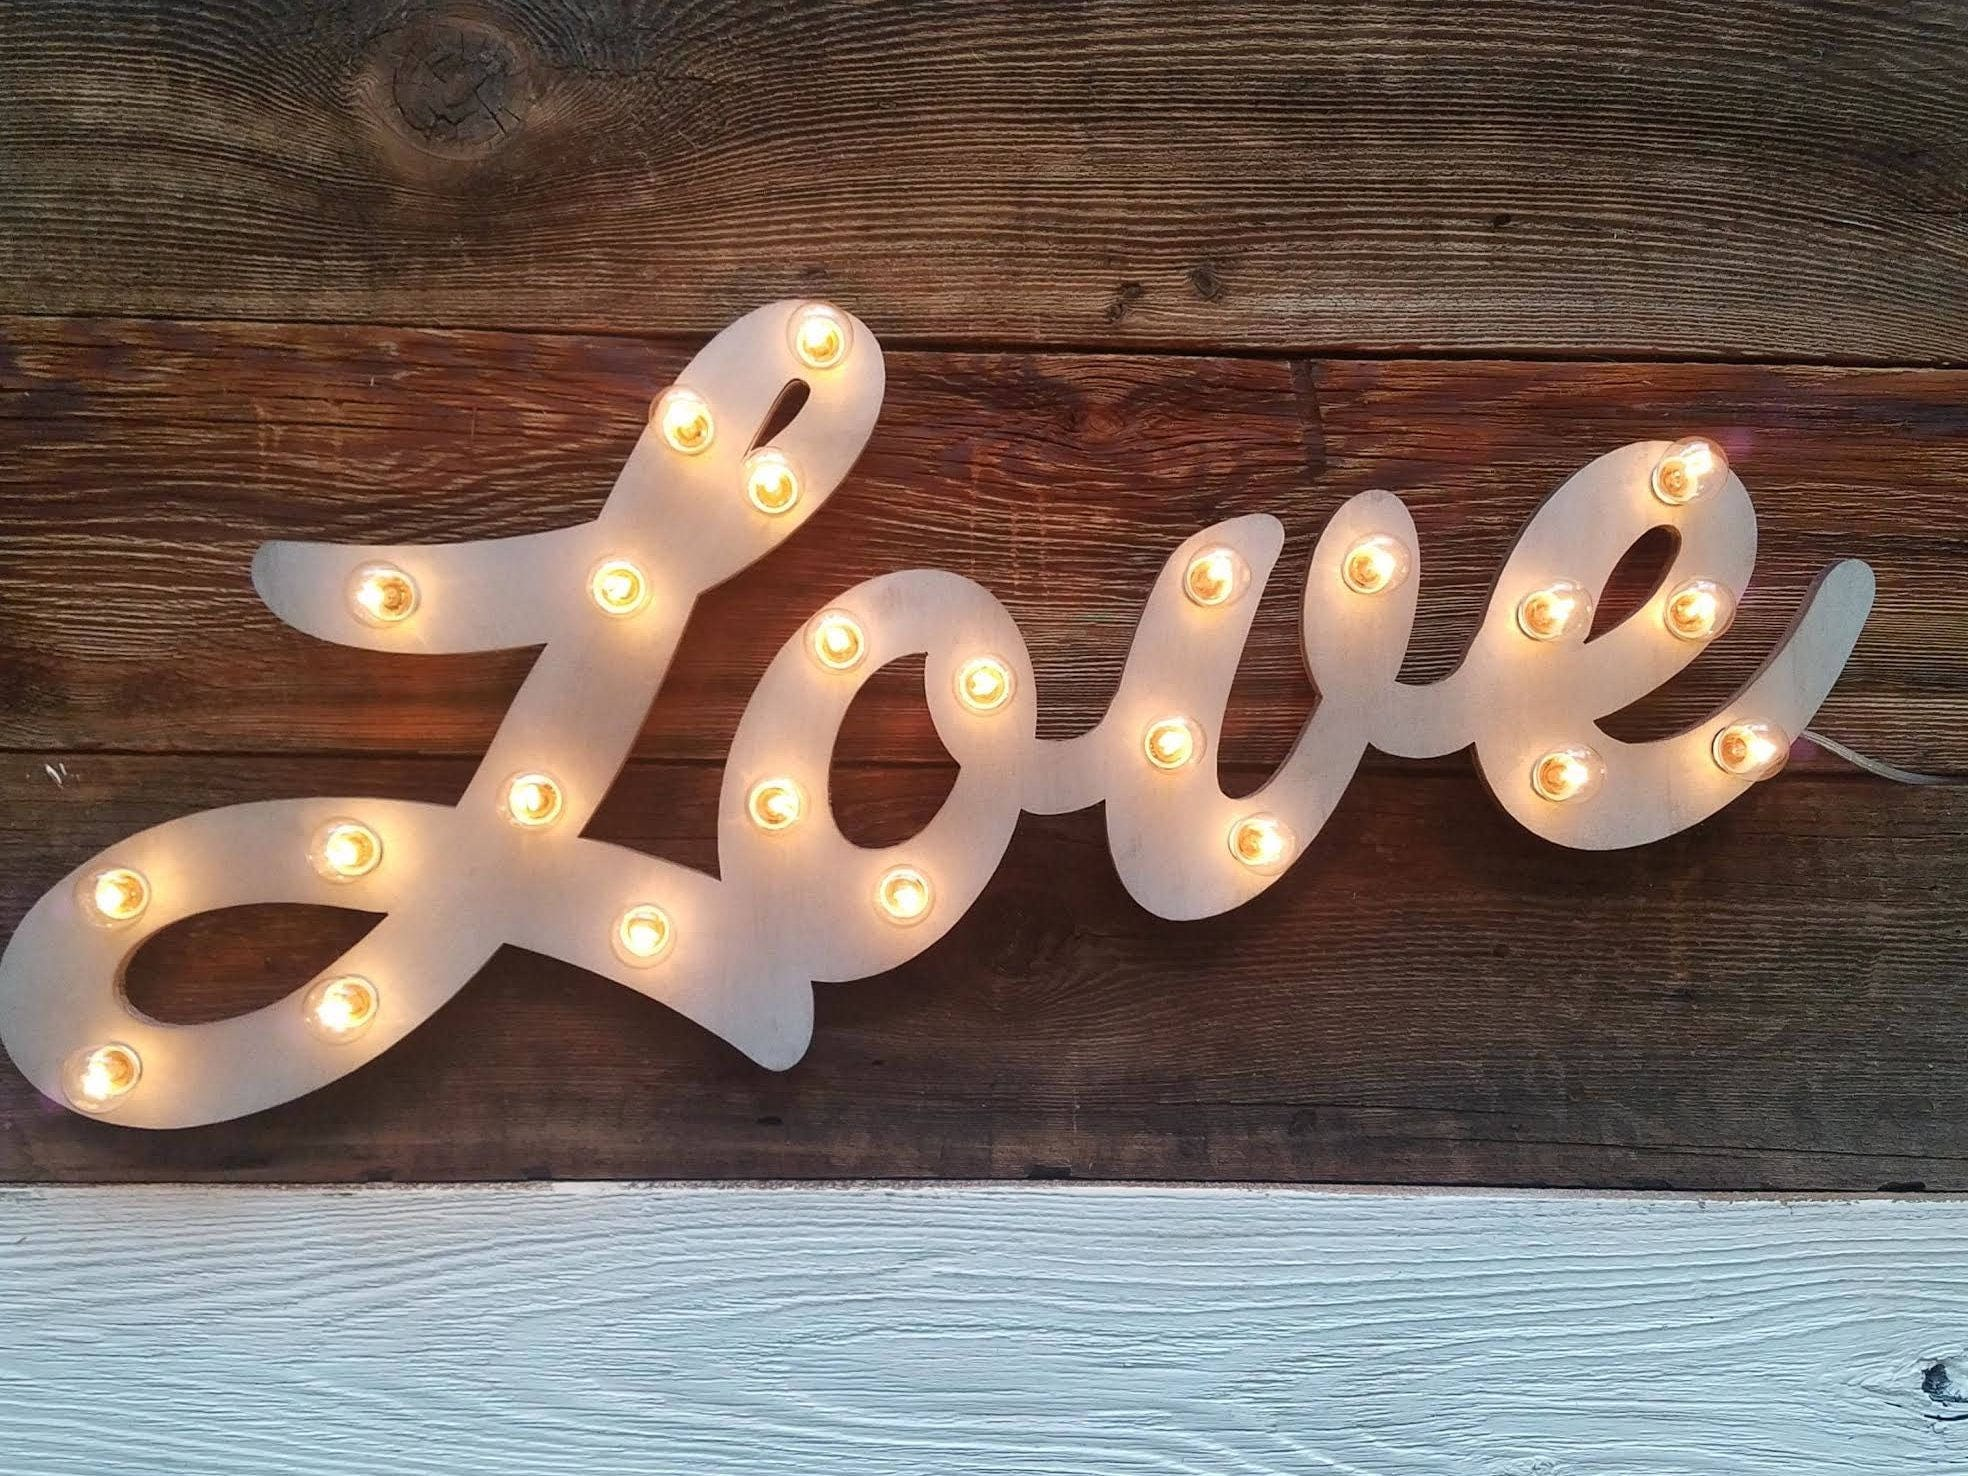 marquee sign lighted wood custom personalized marquee love sign letters love play open bar dream custom wedding gift vendor restaurant